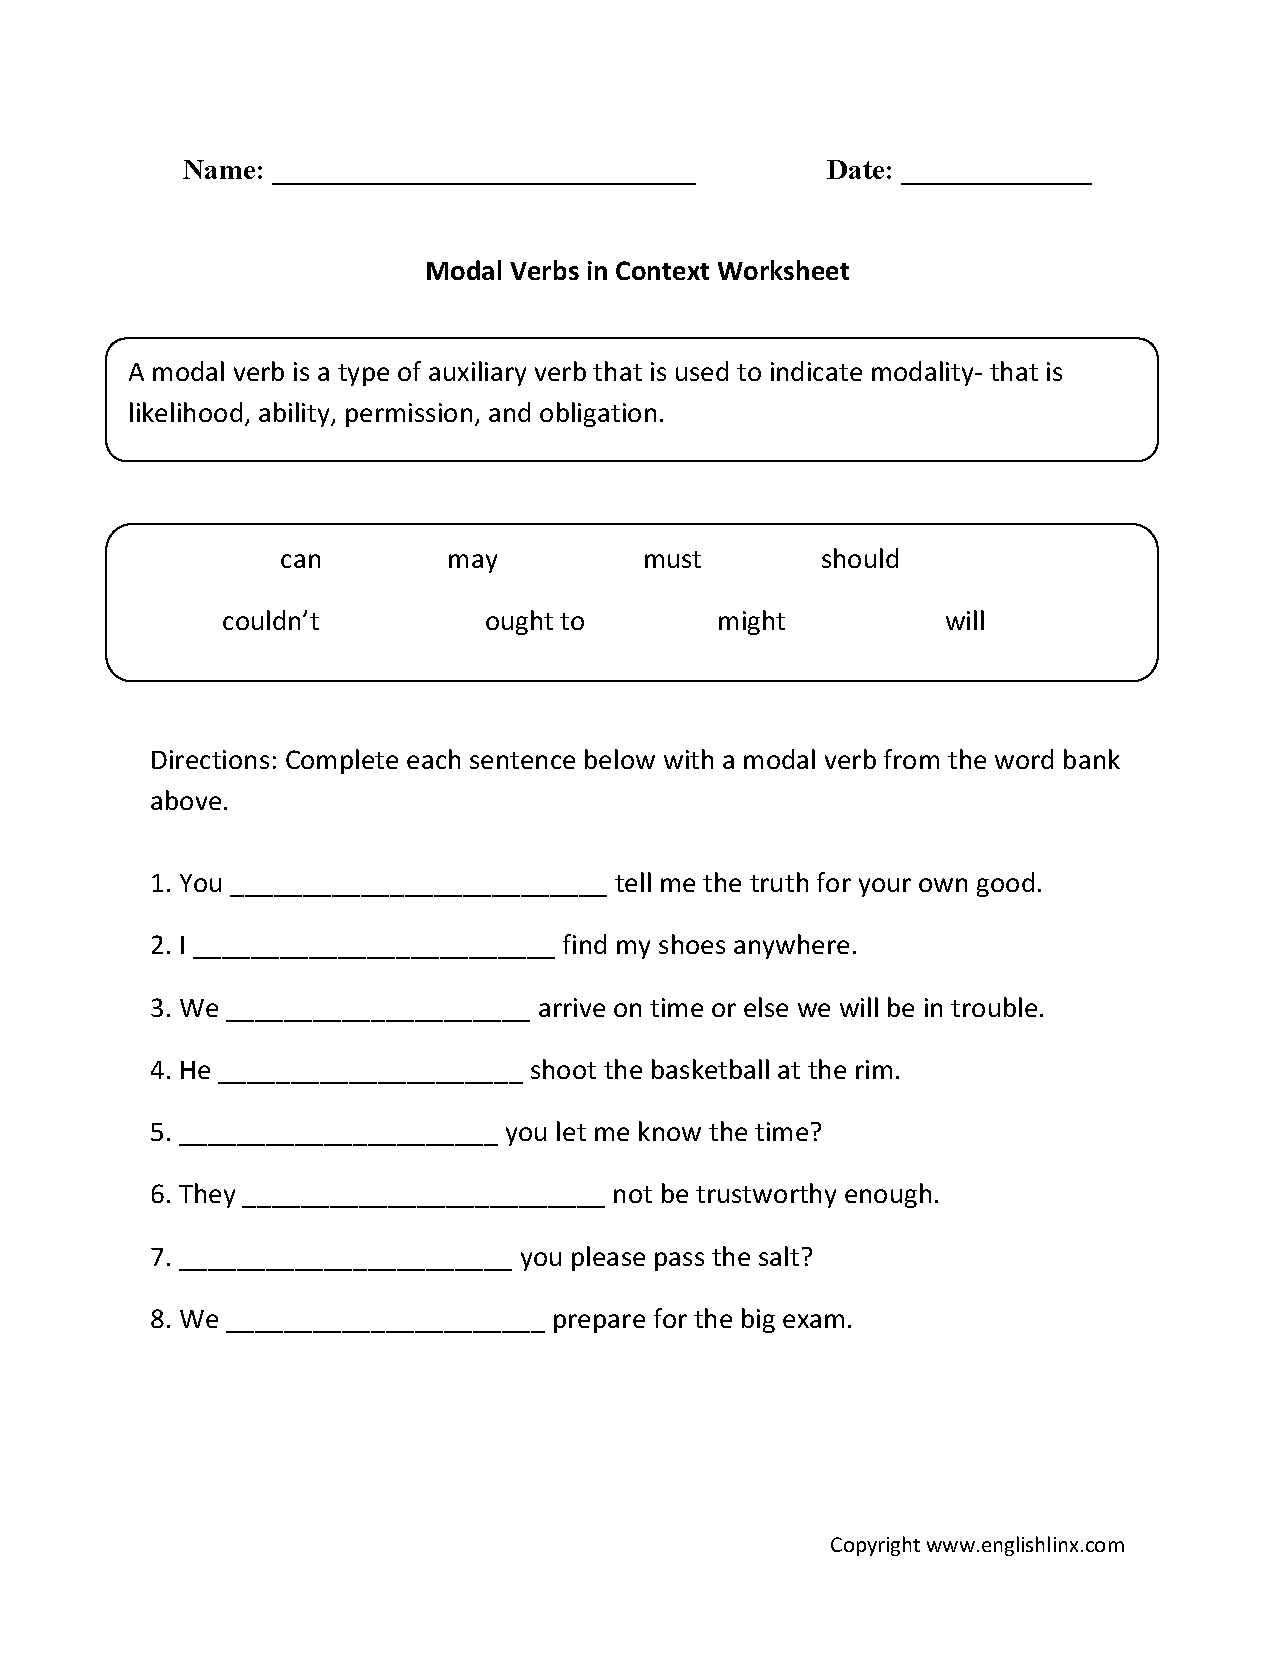 Aldiablosus  Marvelous Worksheet For Verbs  Coffemix With Fair Englishlinxcom  Verbs Worksheets With Beauteous Fraction Of A Whole Worksheet Also Fragment Run On Worksheet In Addition Crucible Worksheets And Beginning Letter Sound Worksheet As Well As Th Grade Graphing Worksheets Additionally The Grasshopper And The Ant Worksheets From Coffemixcom With Aldiablosus  Fair Worksheet For Verbs  Coffemix With Beauteous Englishlinxcom  Verbs Worksheets And Marvelous Fraction Of A Whole Worksheet Also Fragment Run On Worksheet In Addition Crucible Worksheets From Coffemixcom